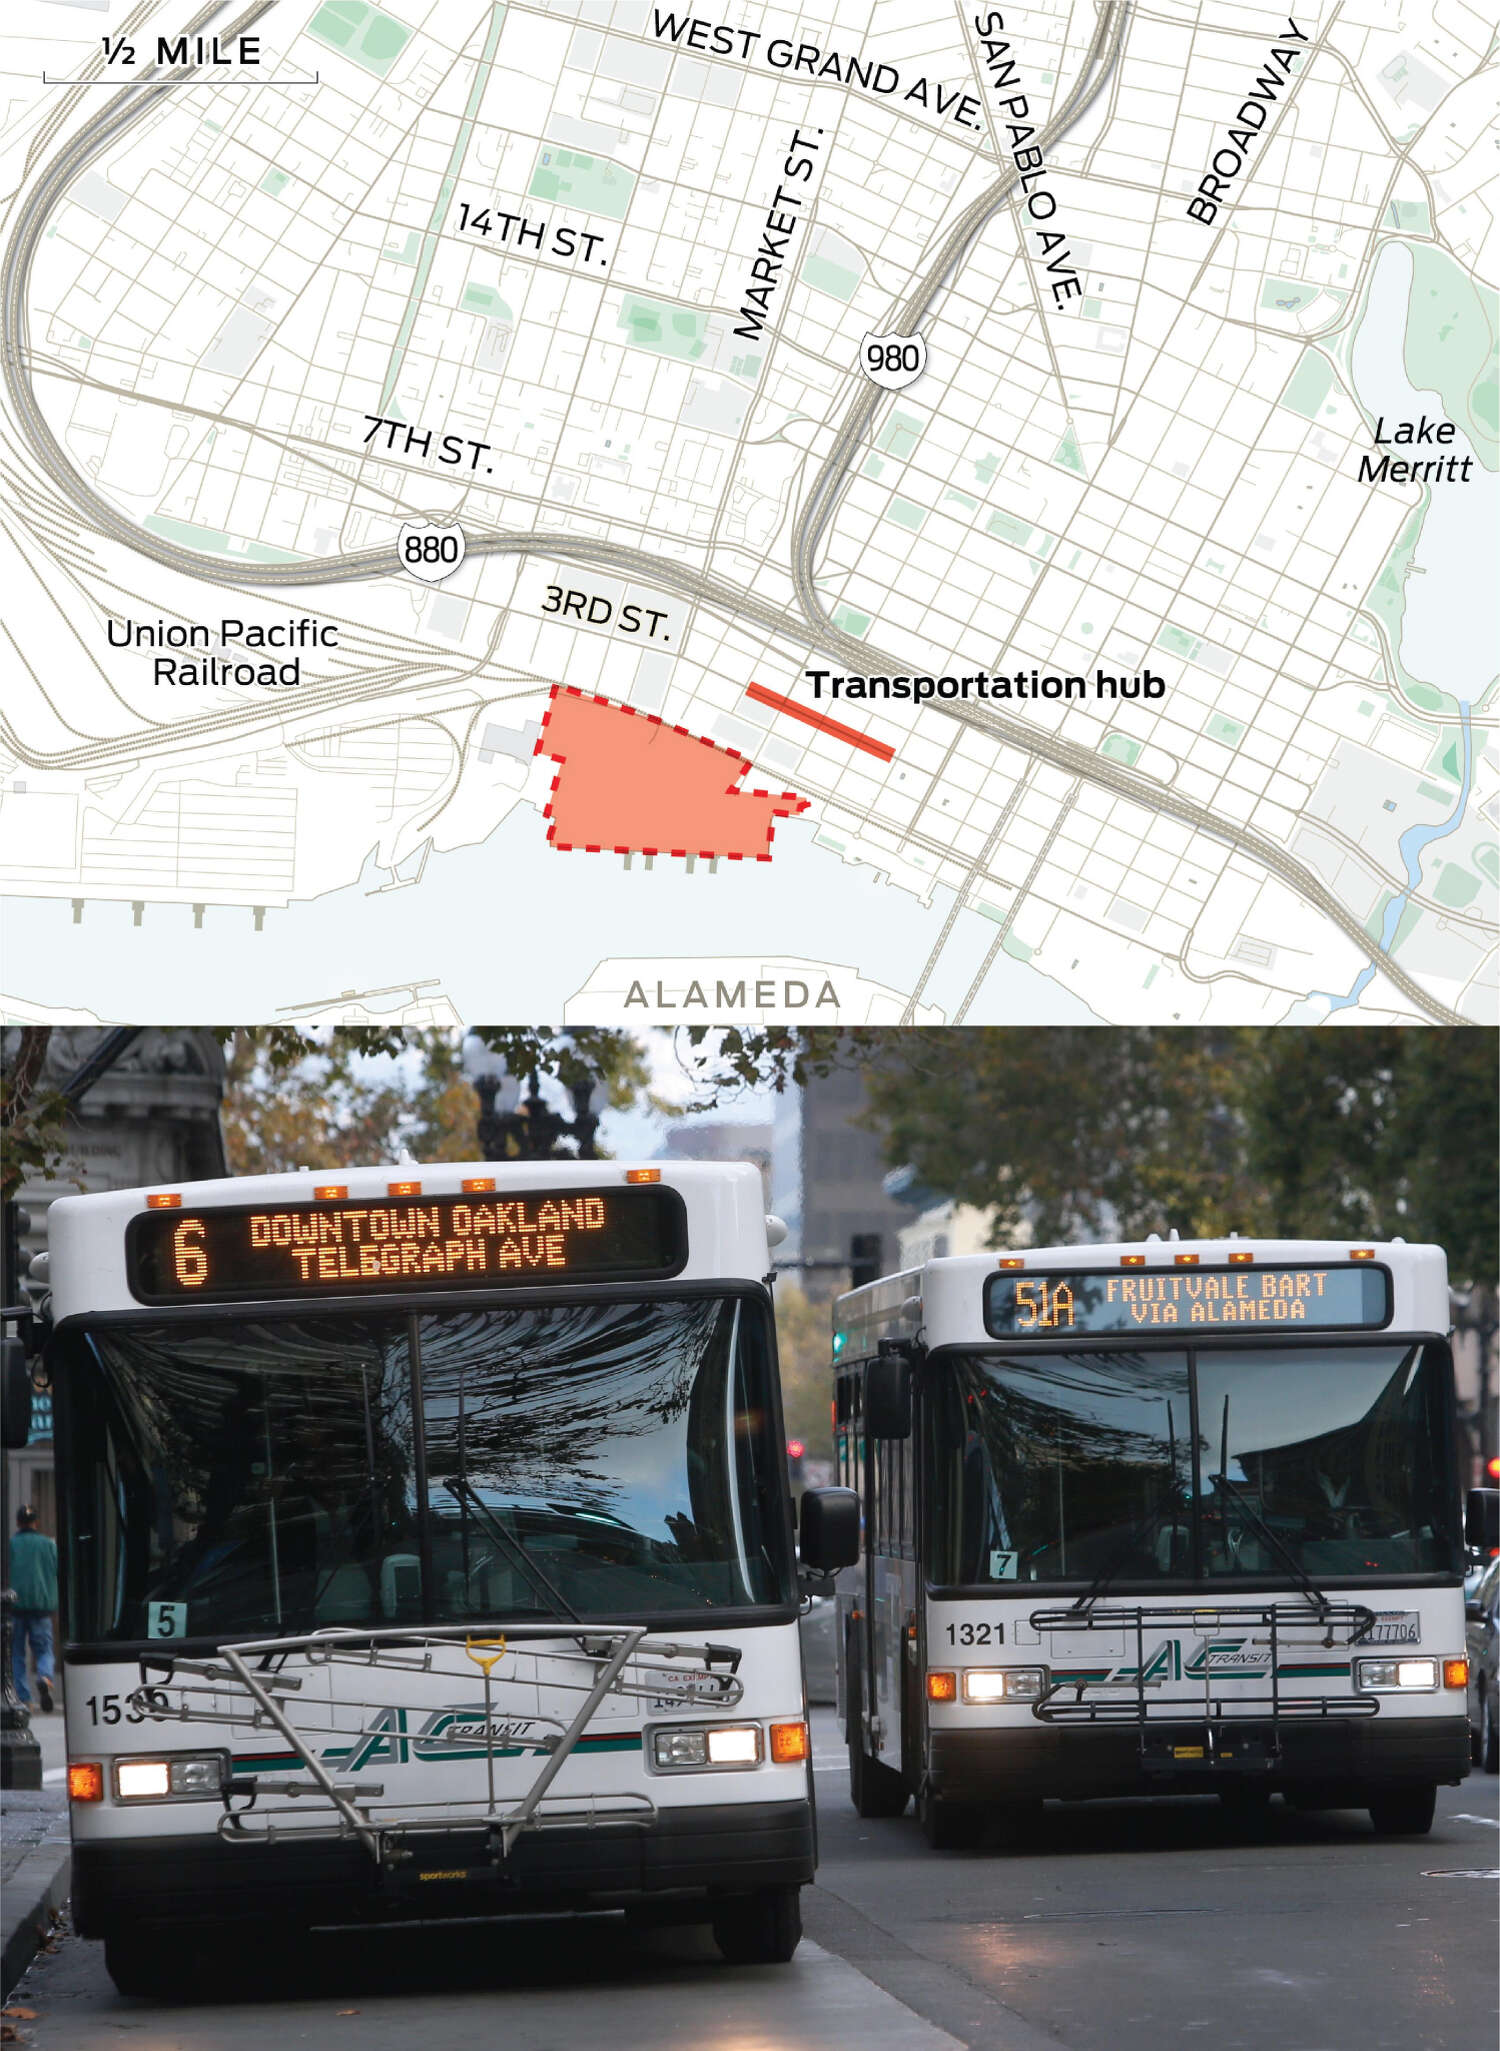 The proposed transit hub is shown on Second Street between Castro and Washington streets.